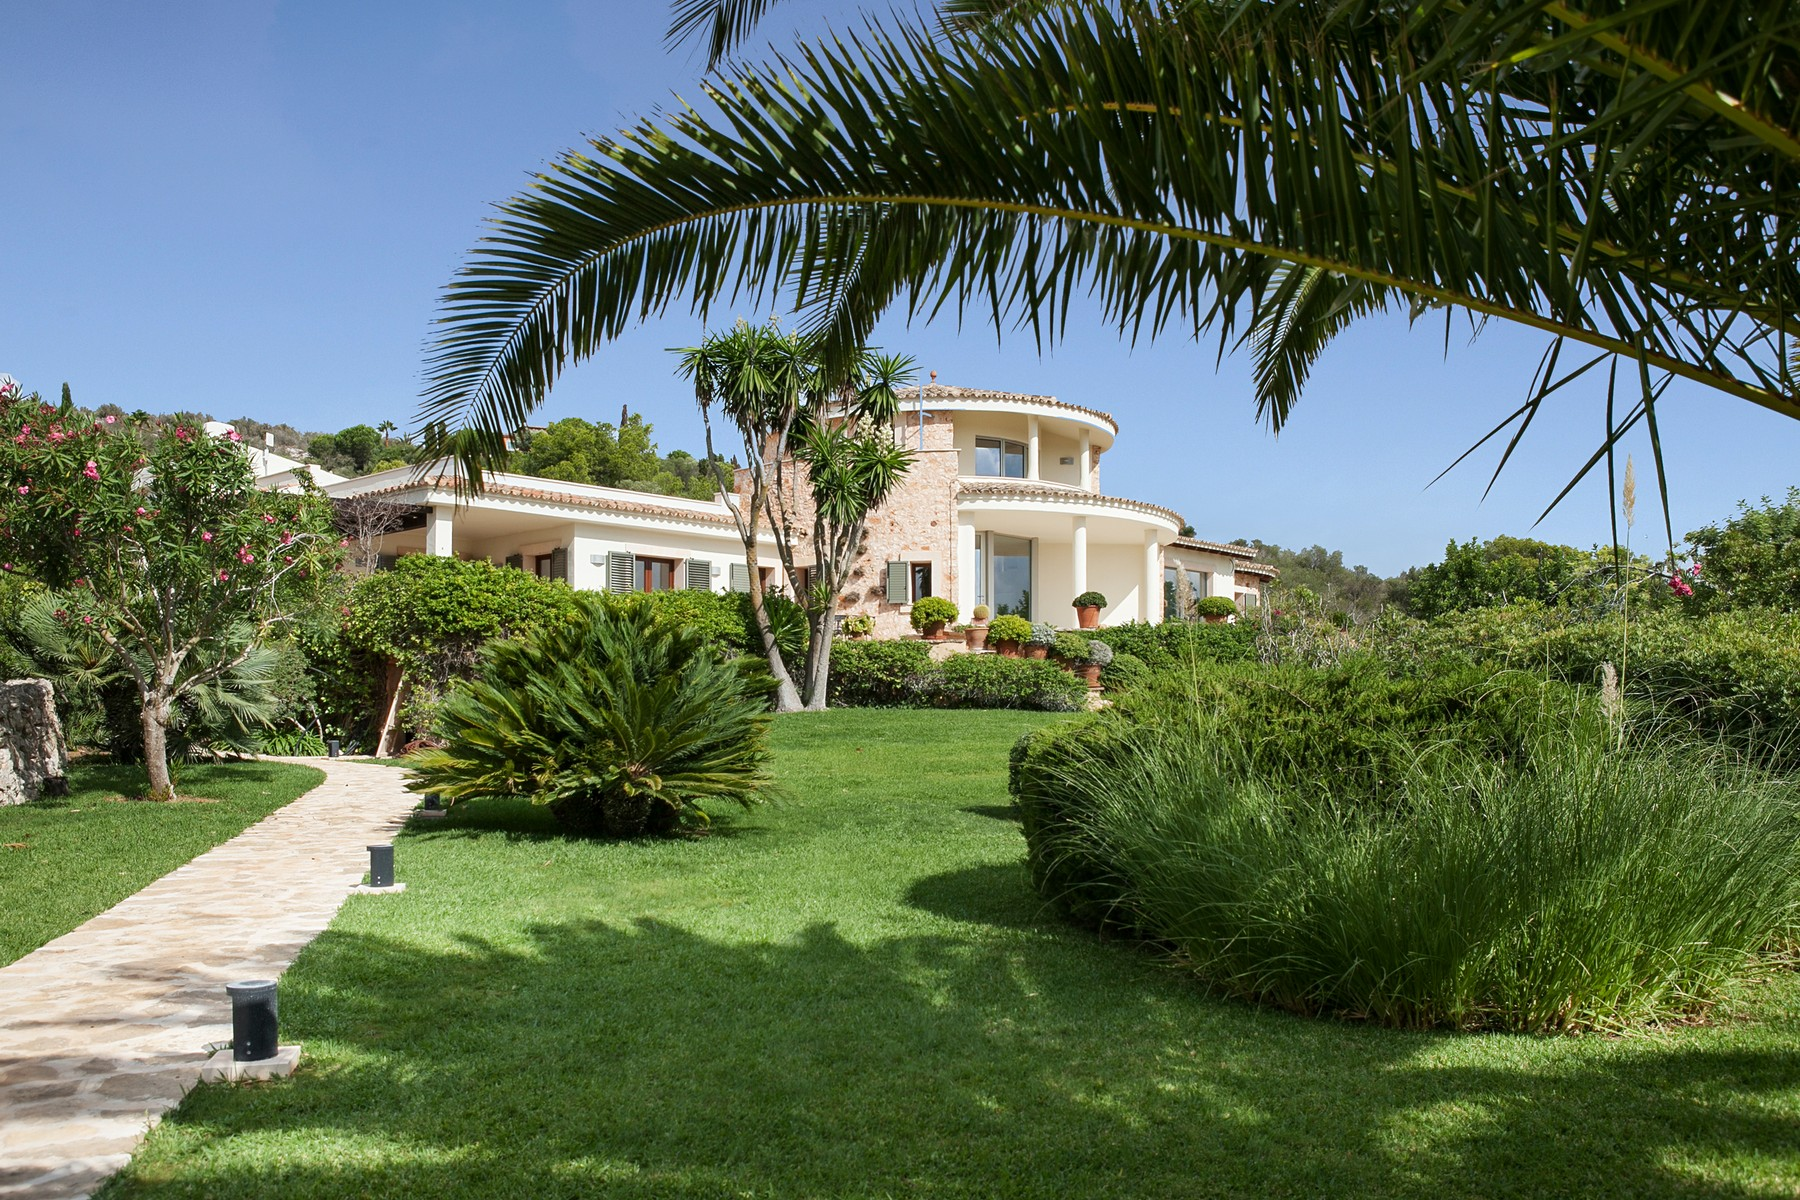 Villa per Vendita alle ore Country Estate with sea views near Porto Colom es caritxo Porto Colom, Maiorca, 07669 Spagna